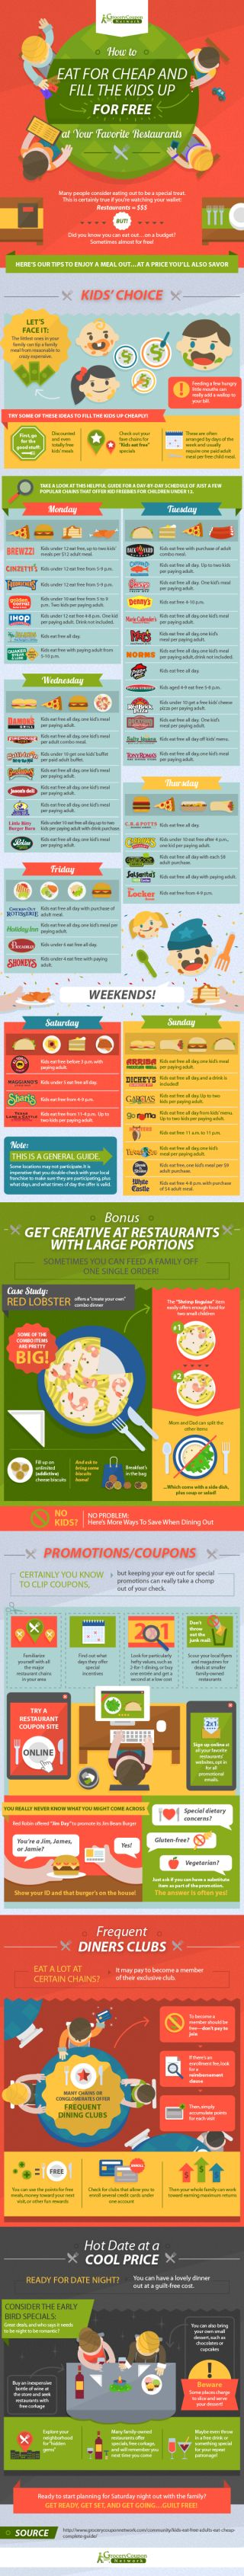 """Restaurants know that feeding kids for free brings in parents. Many restaurants have a """"kids eat free"""" night. This infographic tracks those ..."""